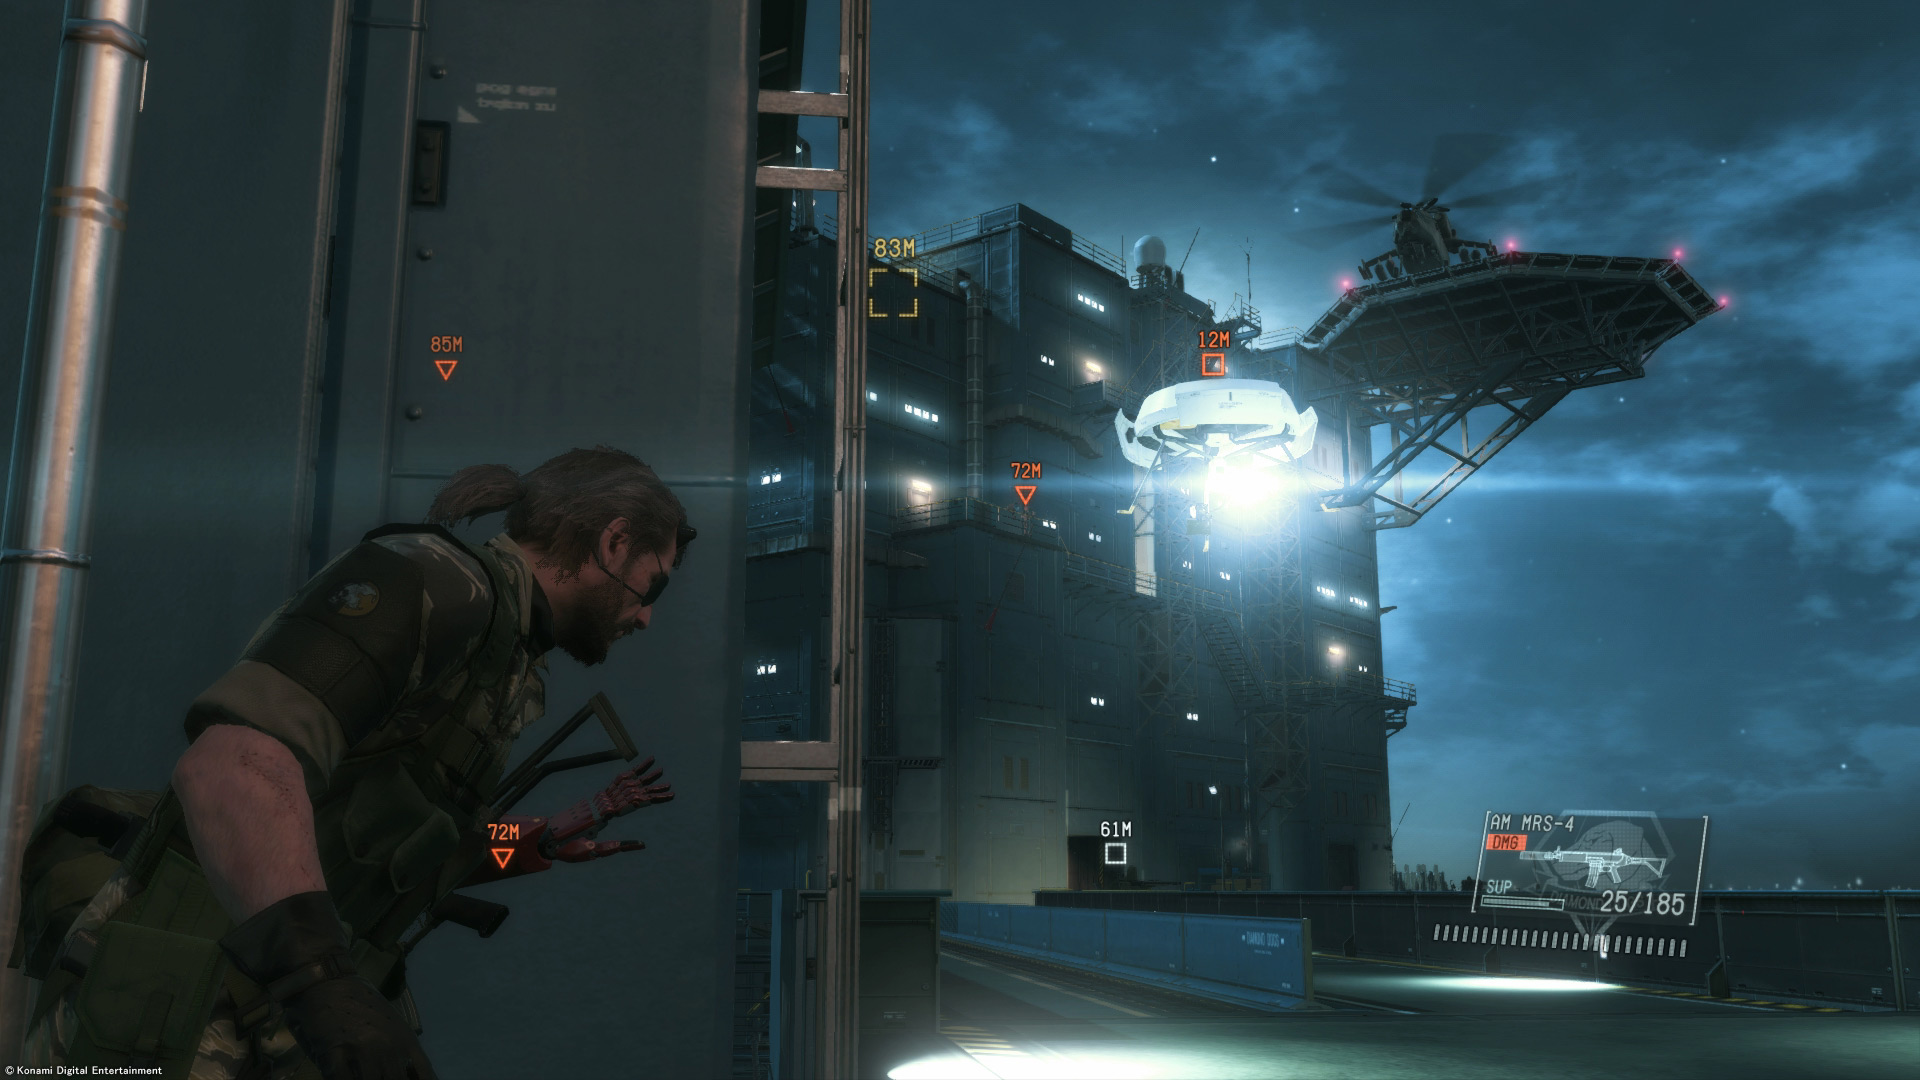 Metal Gear Solid 5 wants you to keep invading FOBs, but